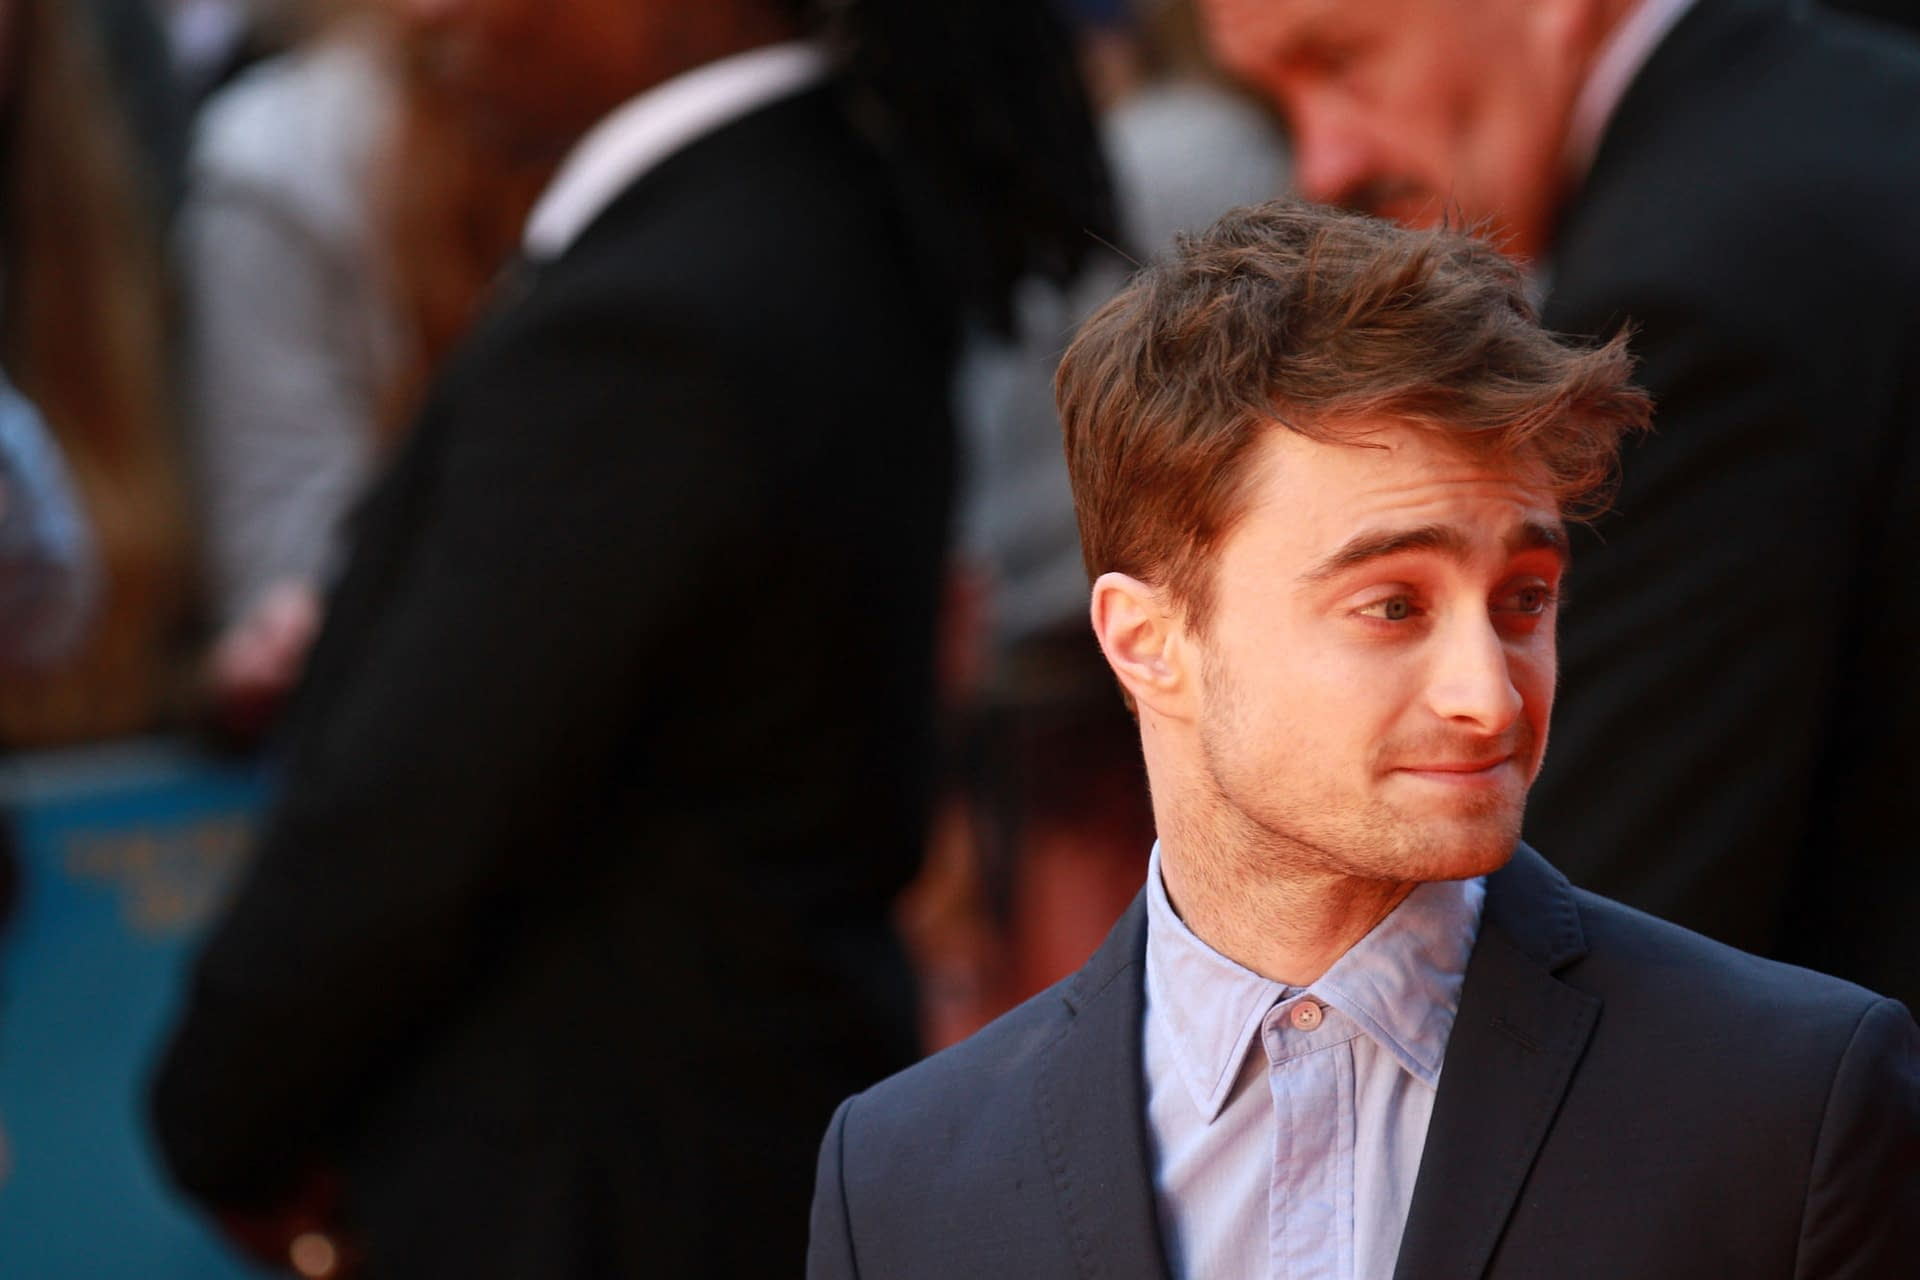 Could Daniel Radcliffe Really Be Filming New Harry Potter Scenes in London With JK Rowling?